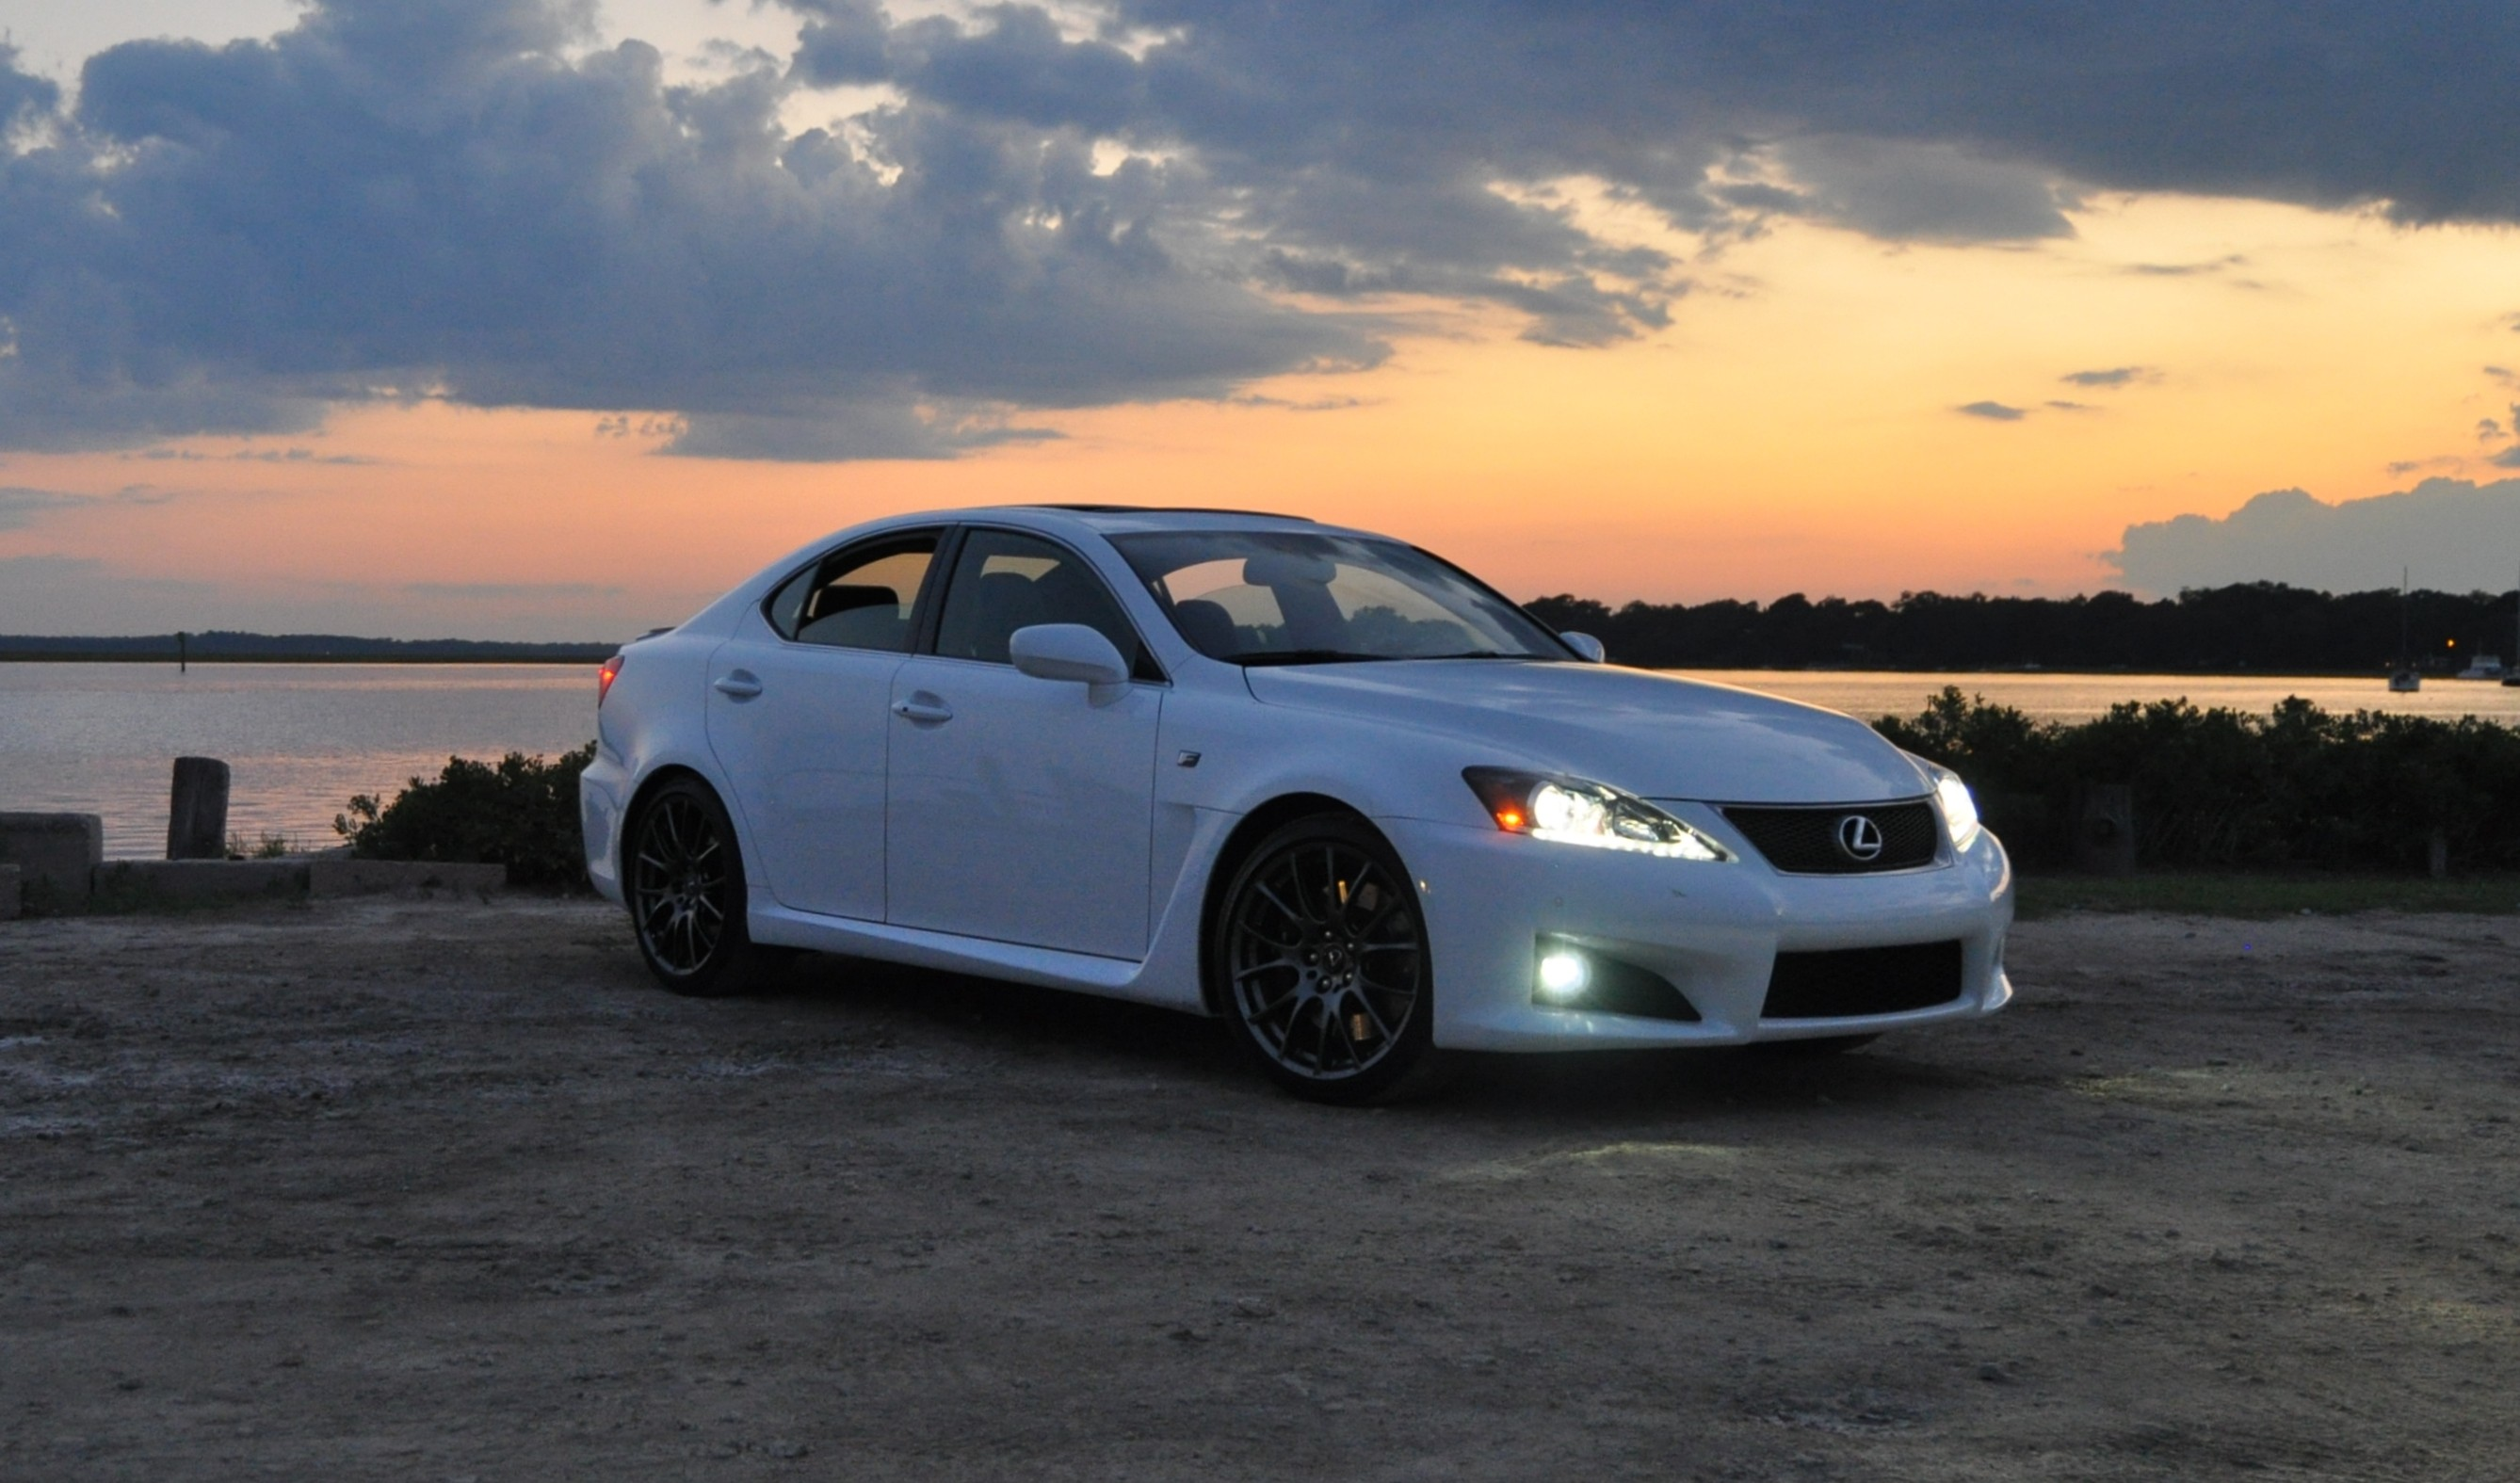 2014 Lexus ISF Looking Sublime for Sunset Shoot on the Bayou